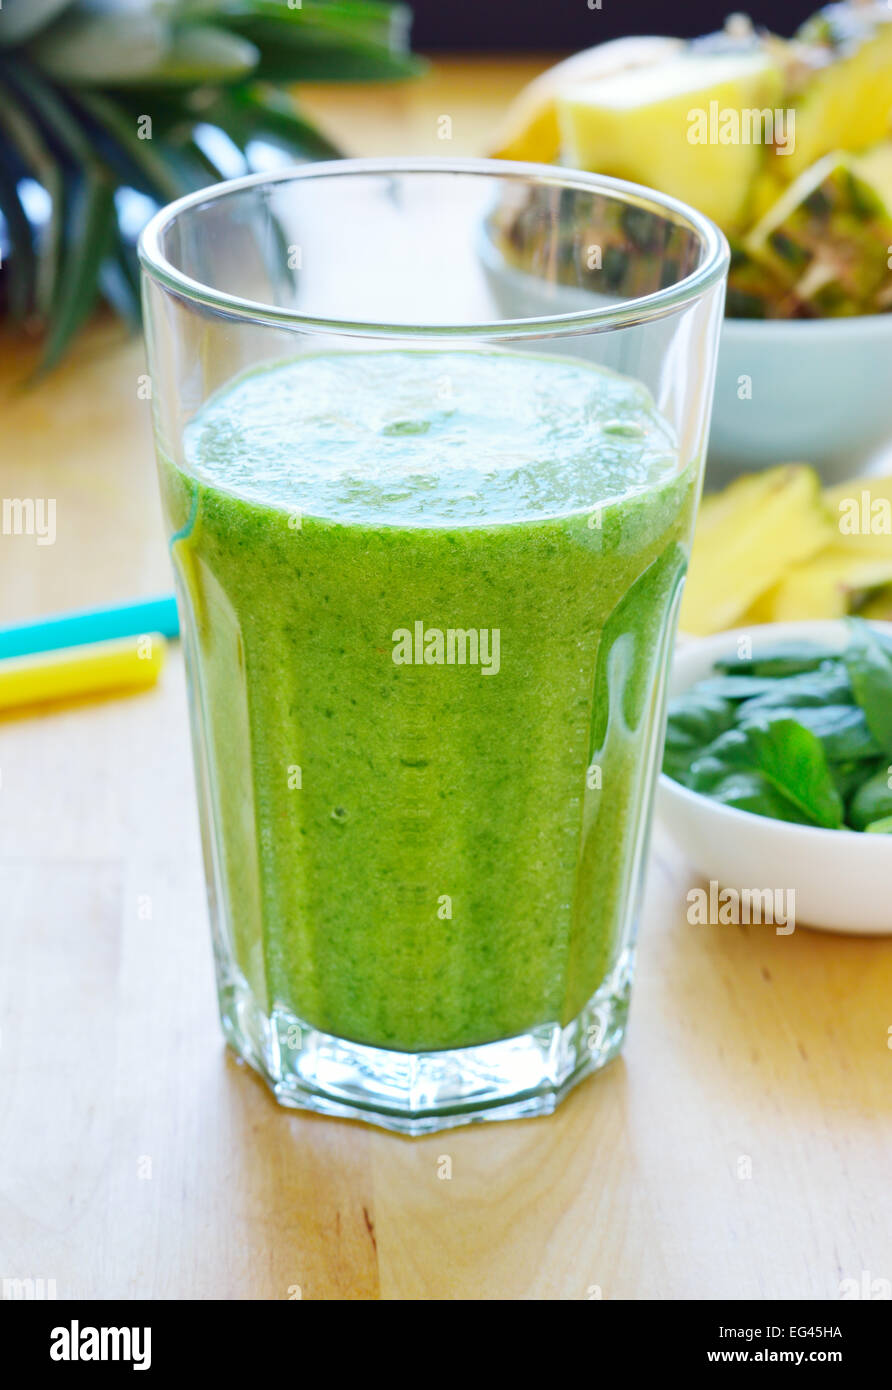 Green spinach and pineapple smoothie on table. Fruit smoothie made with baby spinach leaves, pineapple, banana and - Stock Image